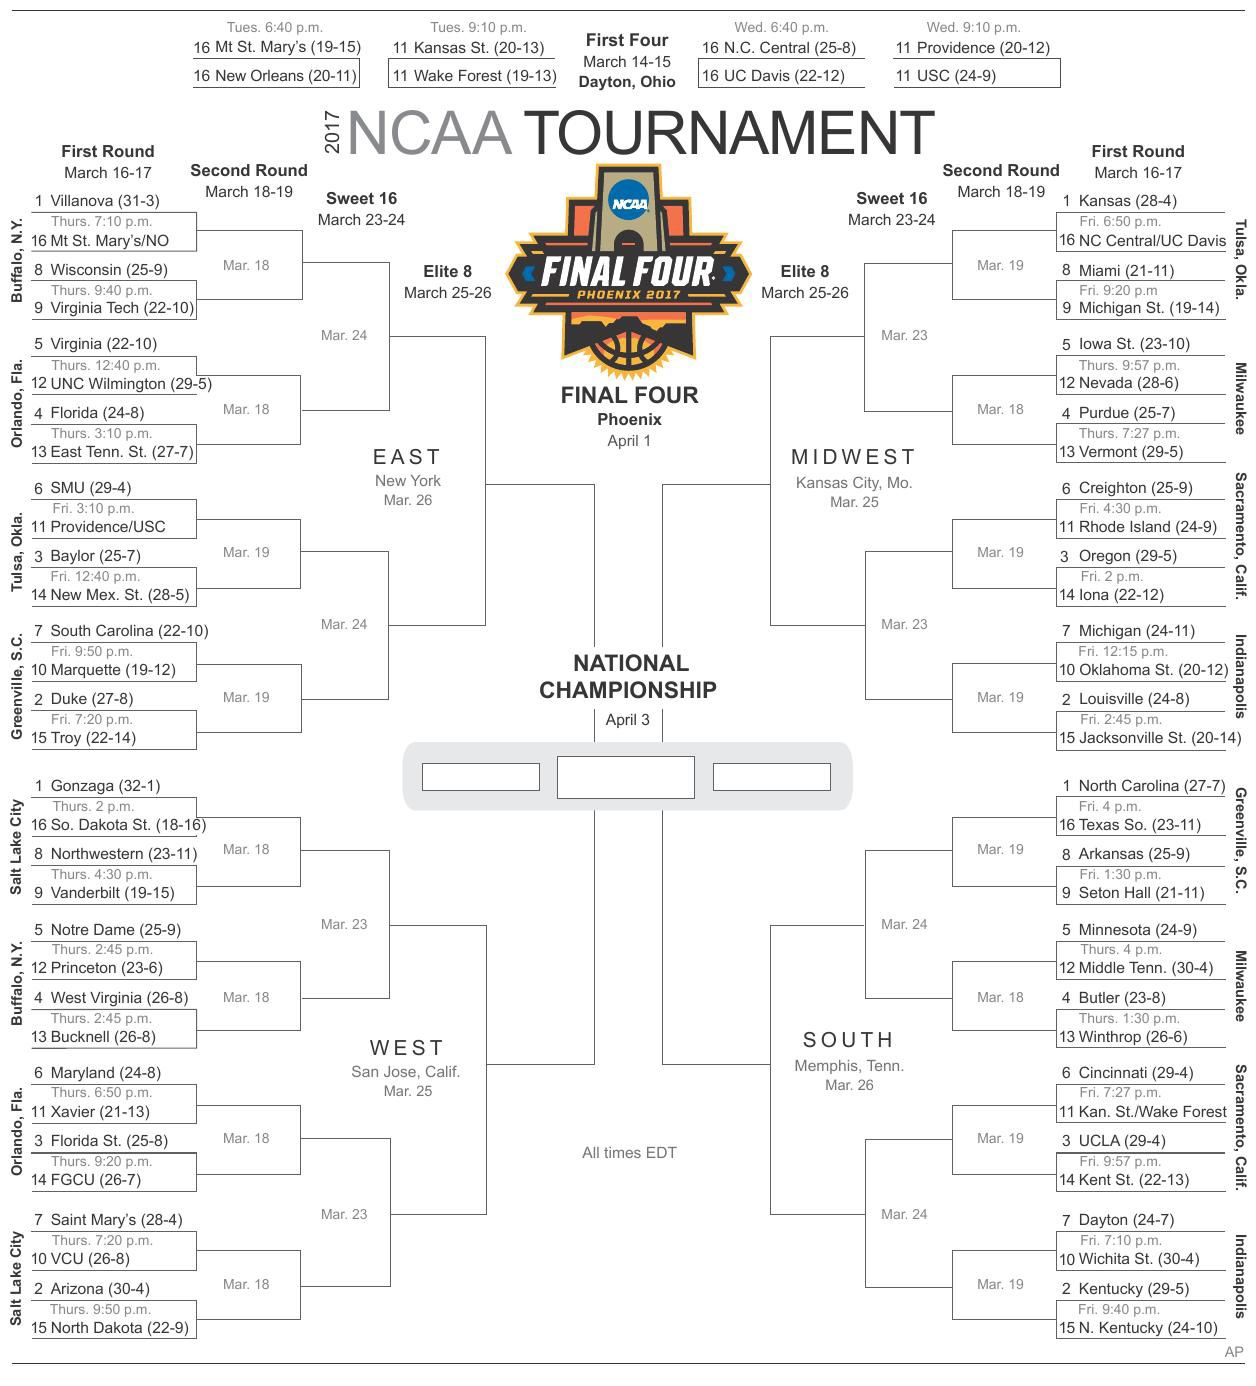 photo relating to Printable Ncaa Bracket With Times and Channels named Printable NCAA event bracket